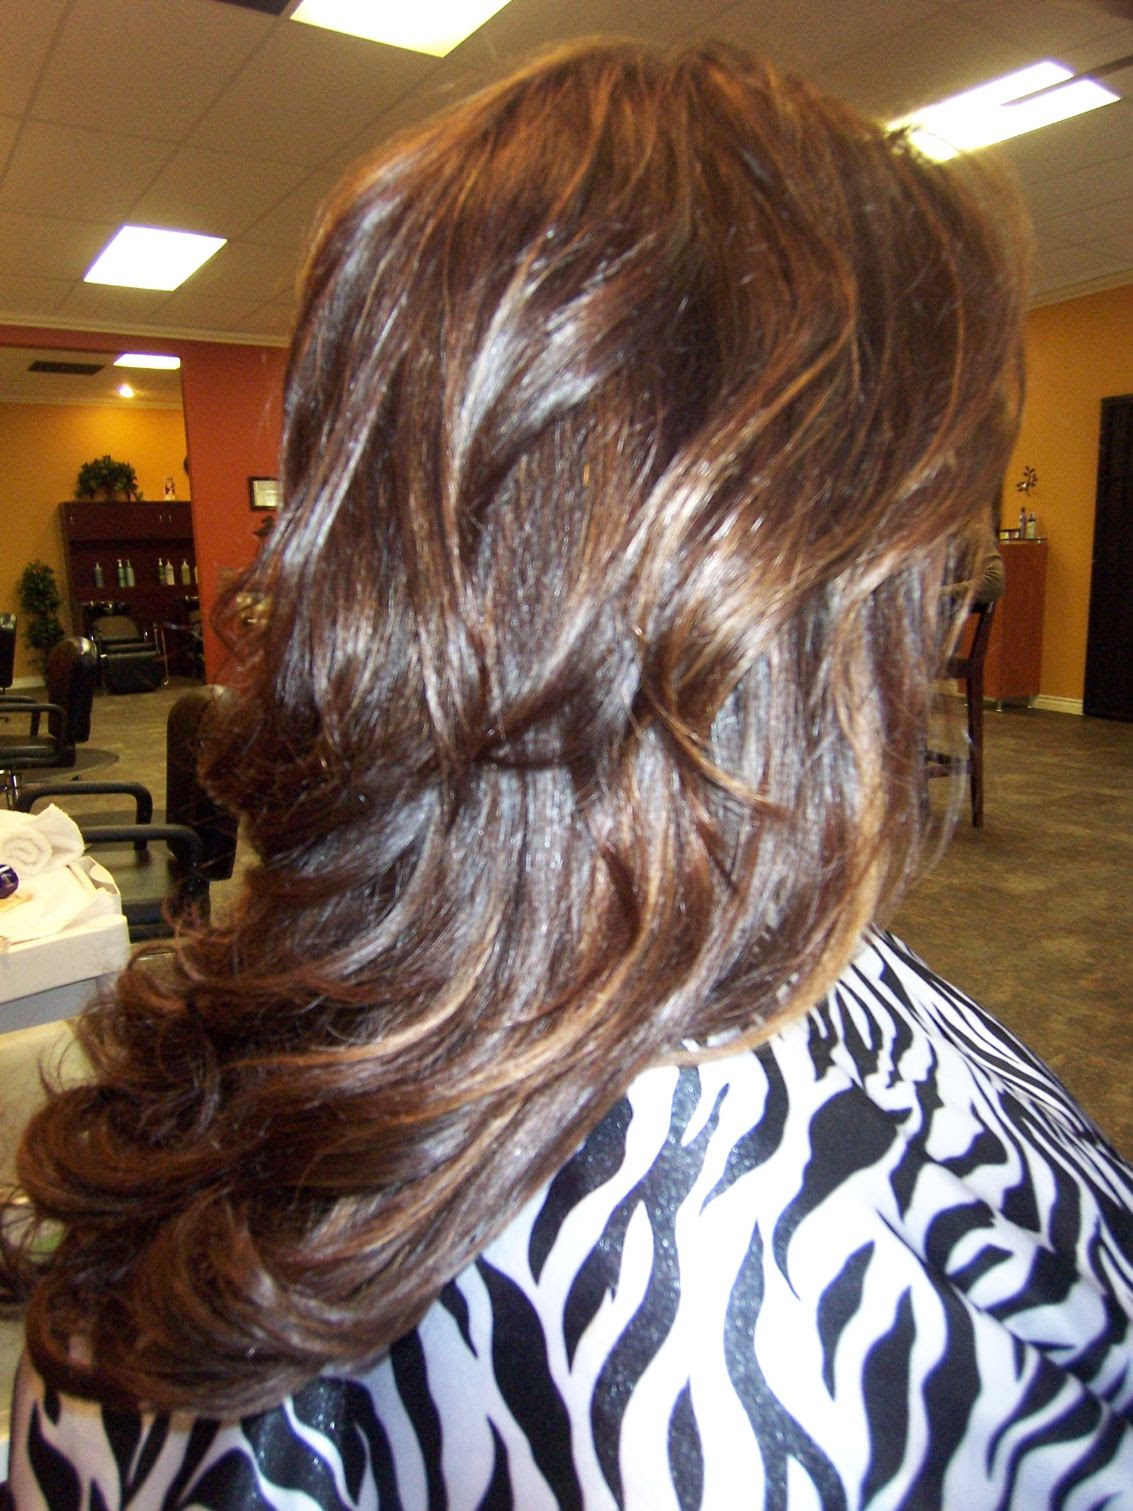 Best Riverside Hair Salons Janine Colorist Hair Extensions Hair Color Specialist Hairstylist 951 202 8188